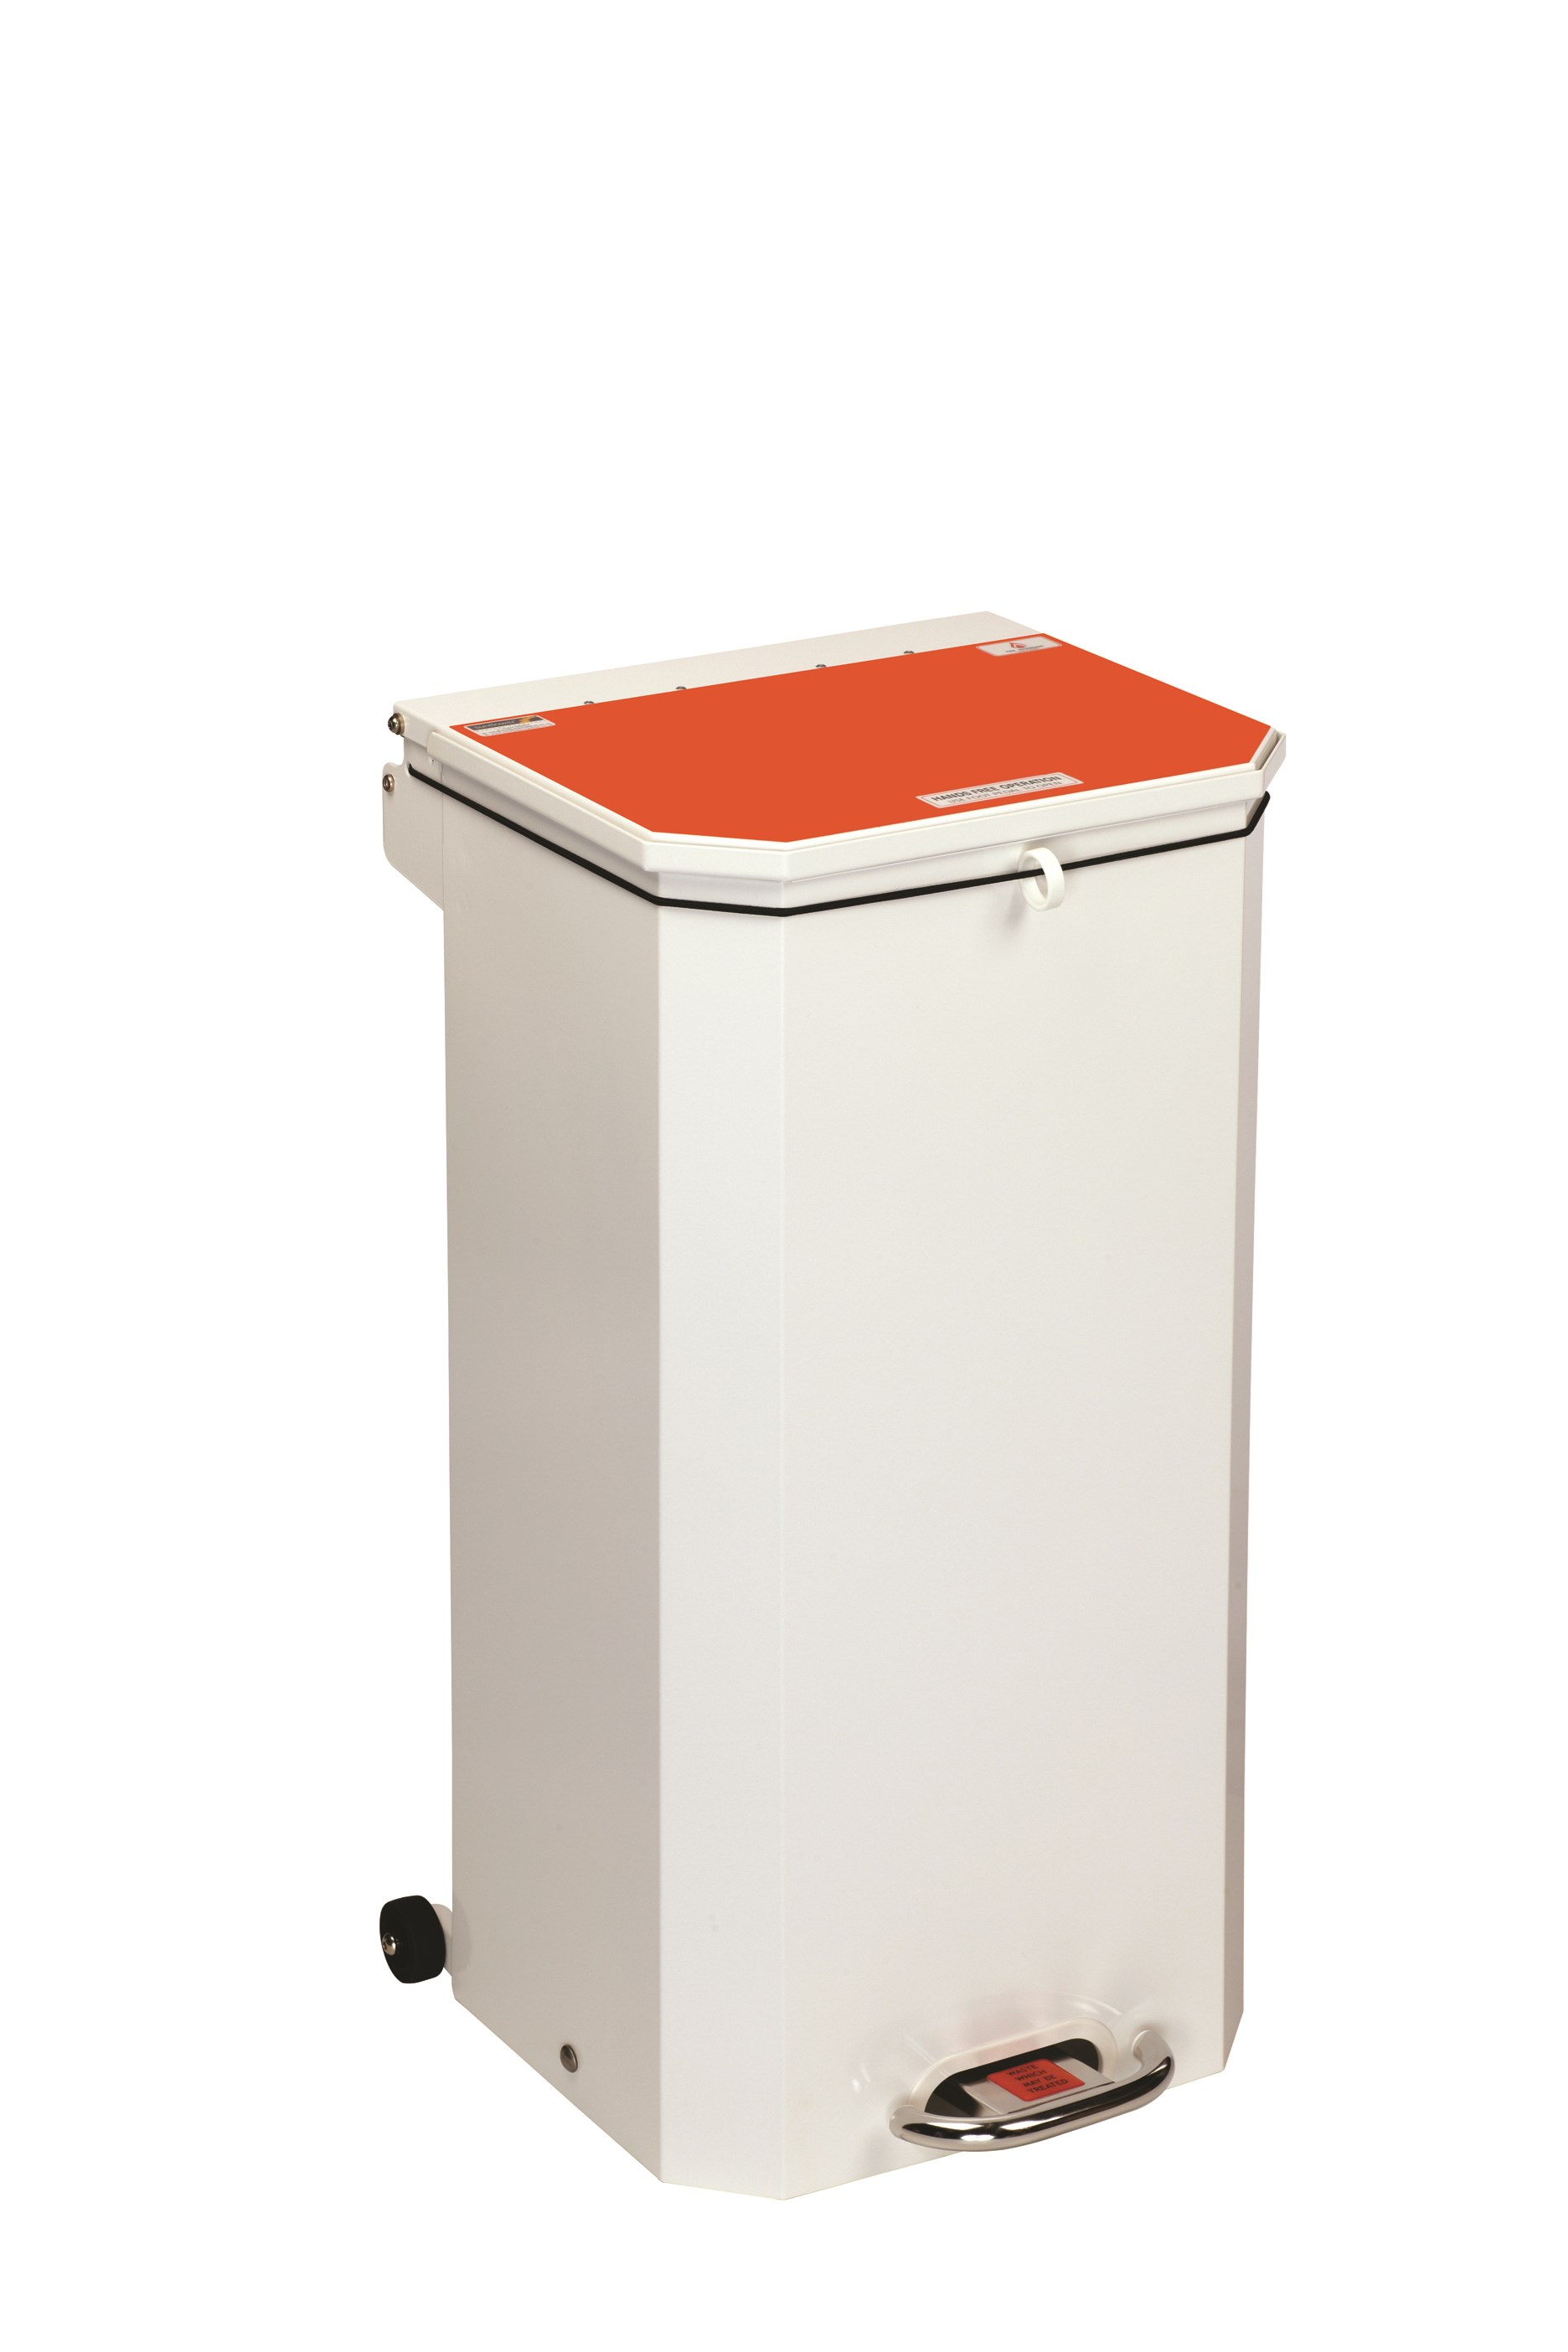 BIN PEDAL 70 LTR WITH ORANGE LID WASTE TO BE TREATED